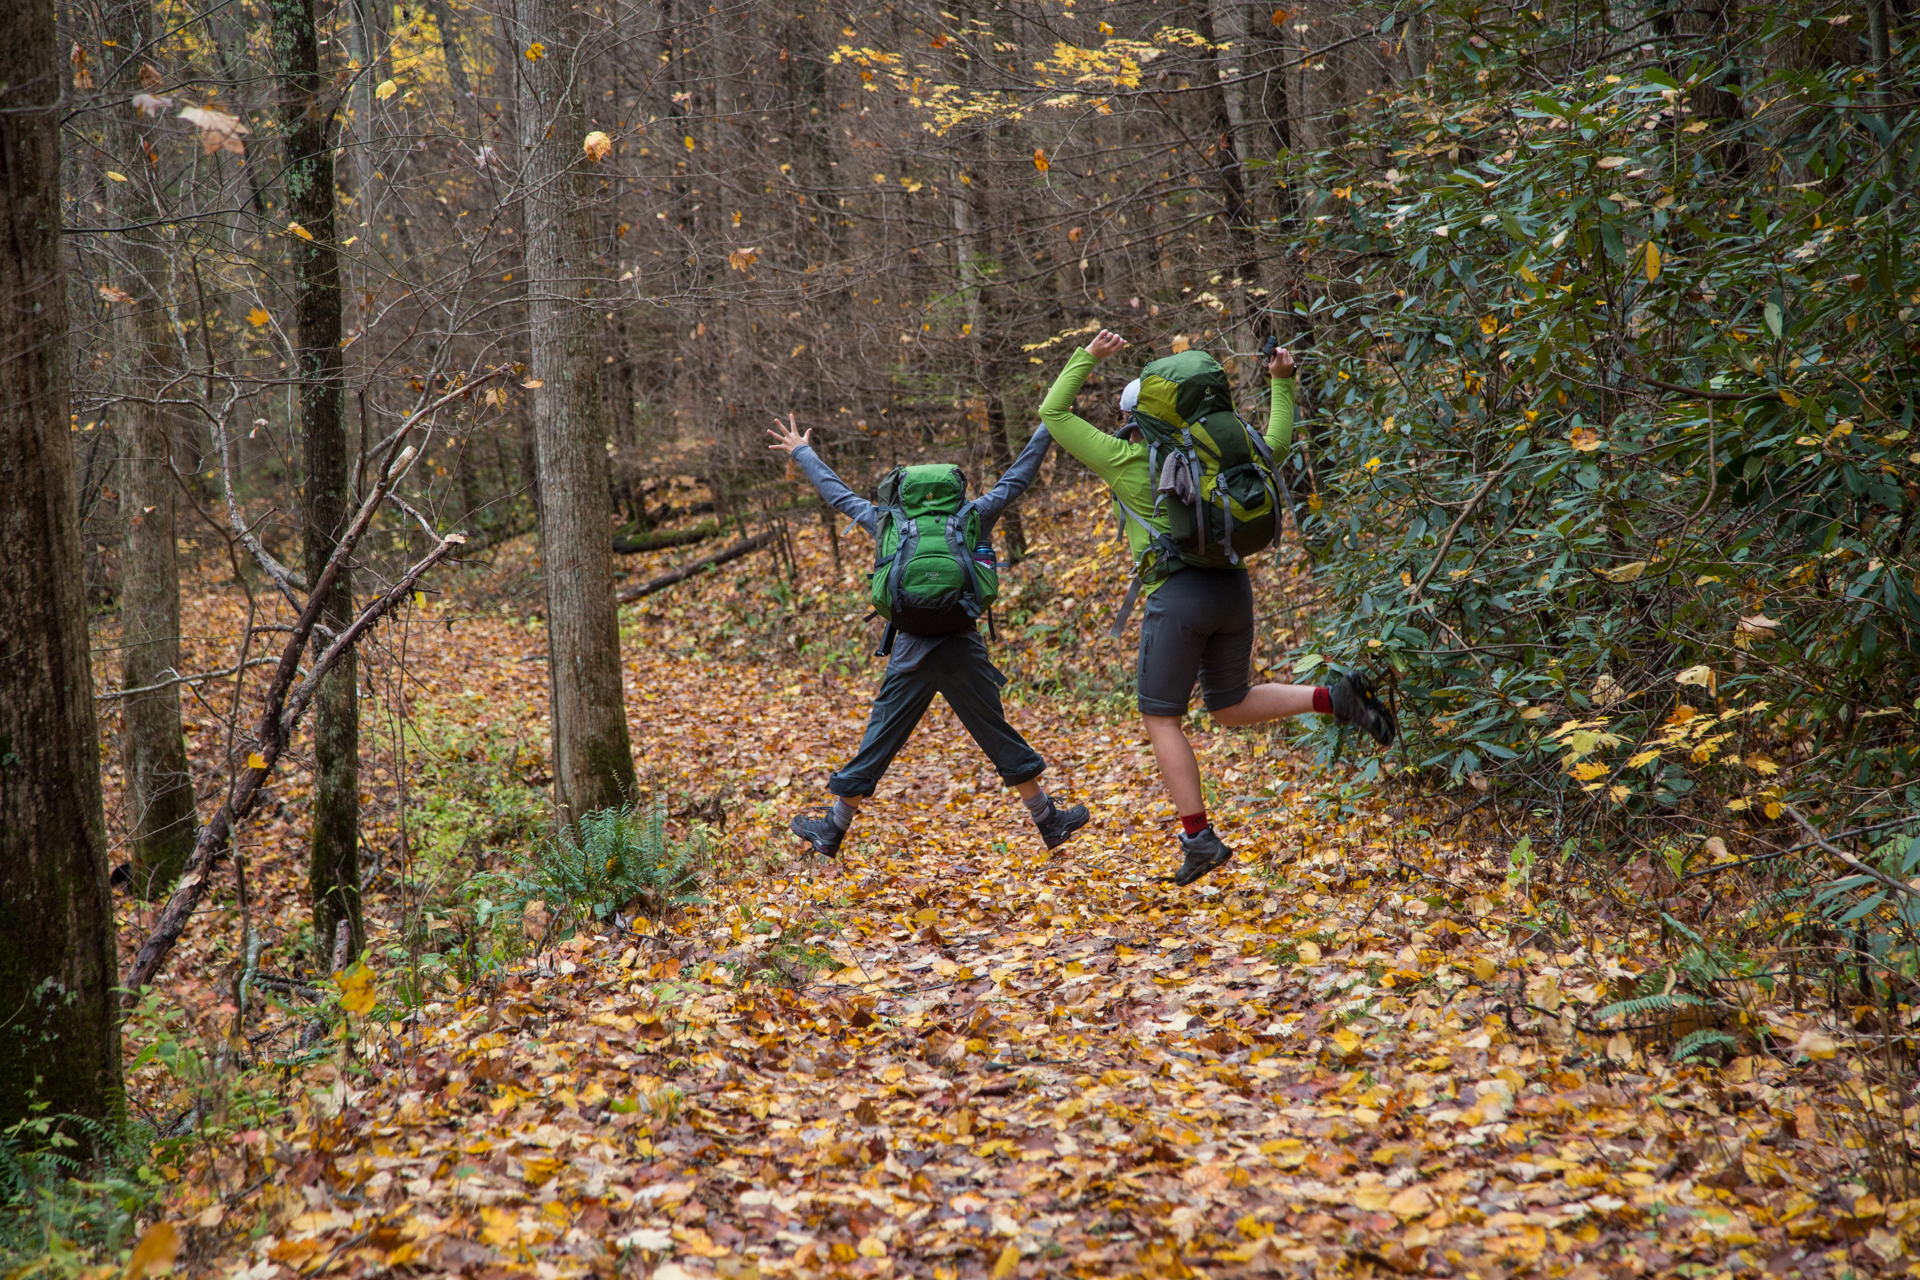 Two ladies with hiking gear jumping in the air on leaf covered trail.